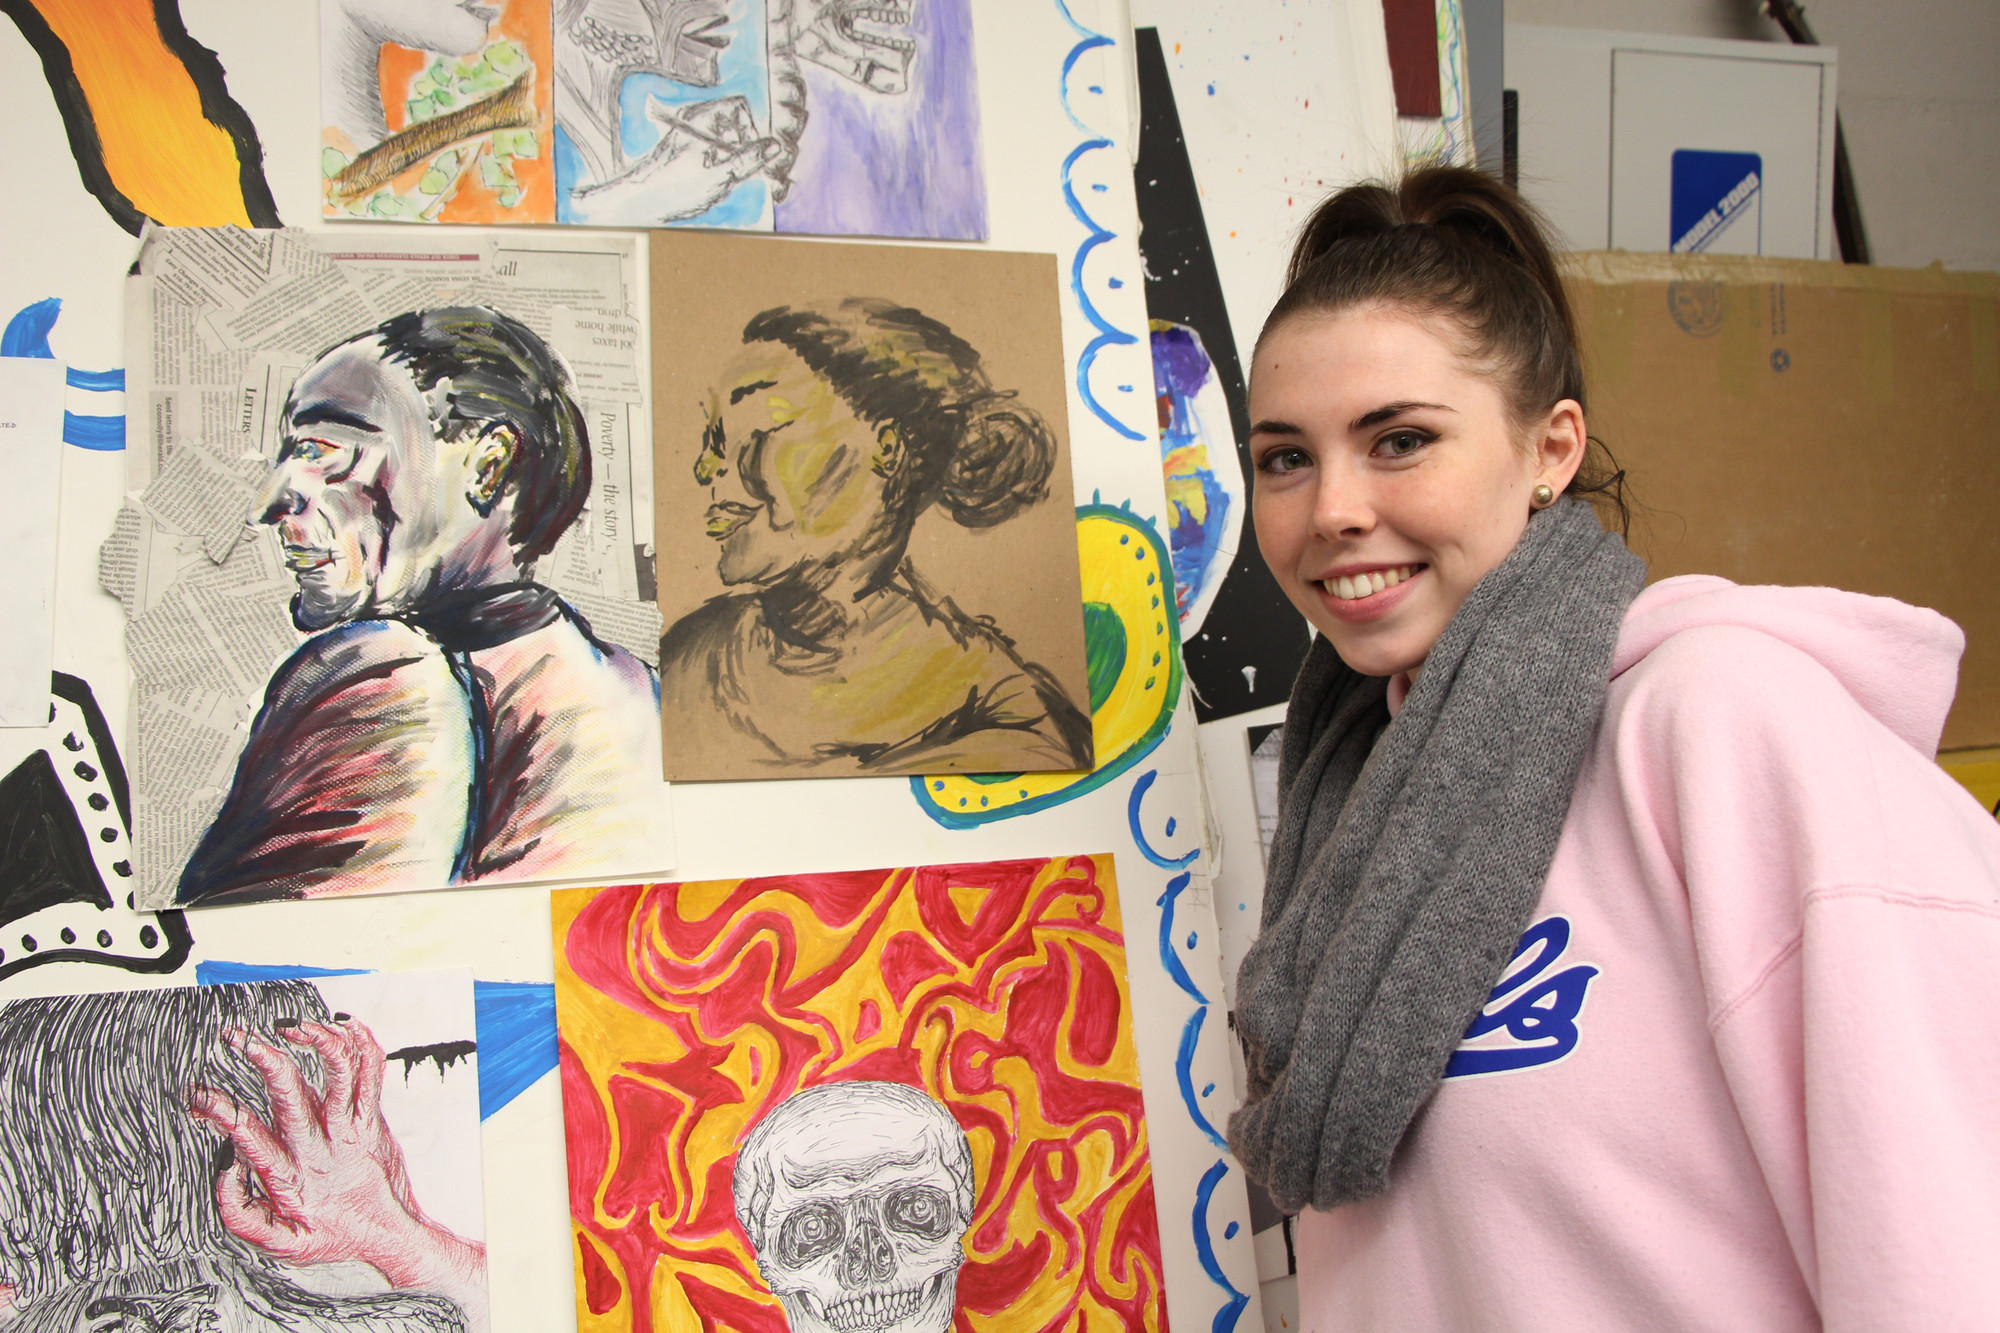 Caitlin Airey, 17 and a BHS senior, had several works of art on display. She used chalk, paints, pencils and markers to make her illustrations come to life.